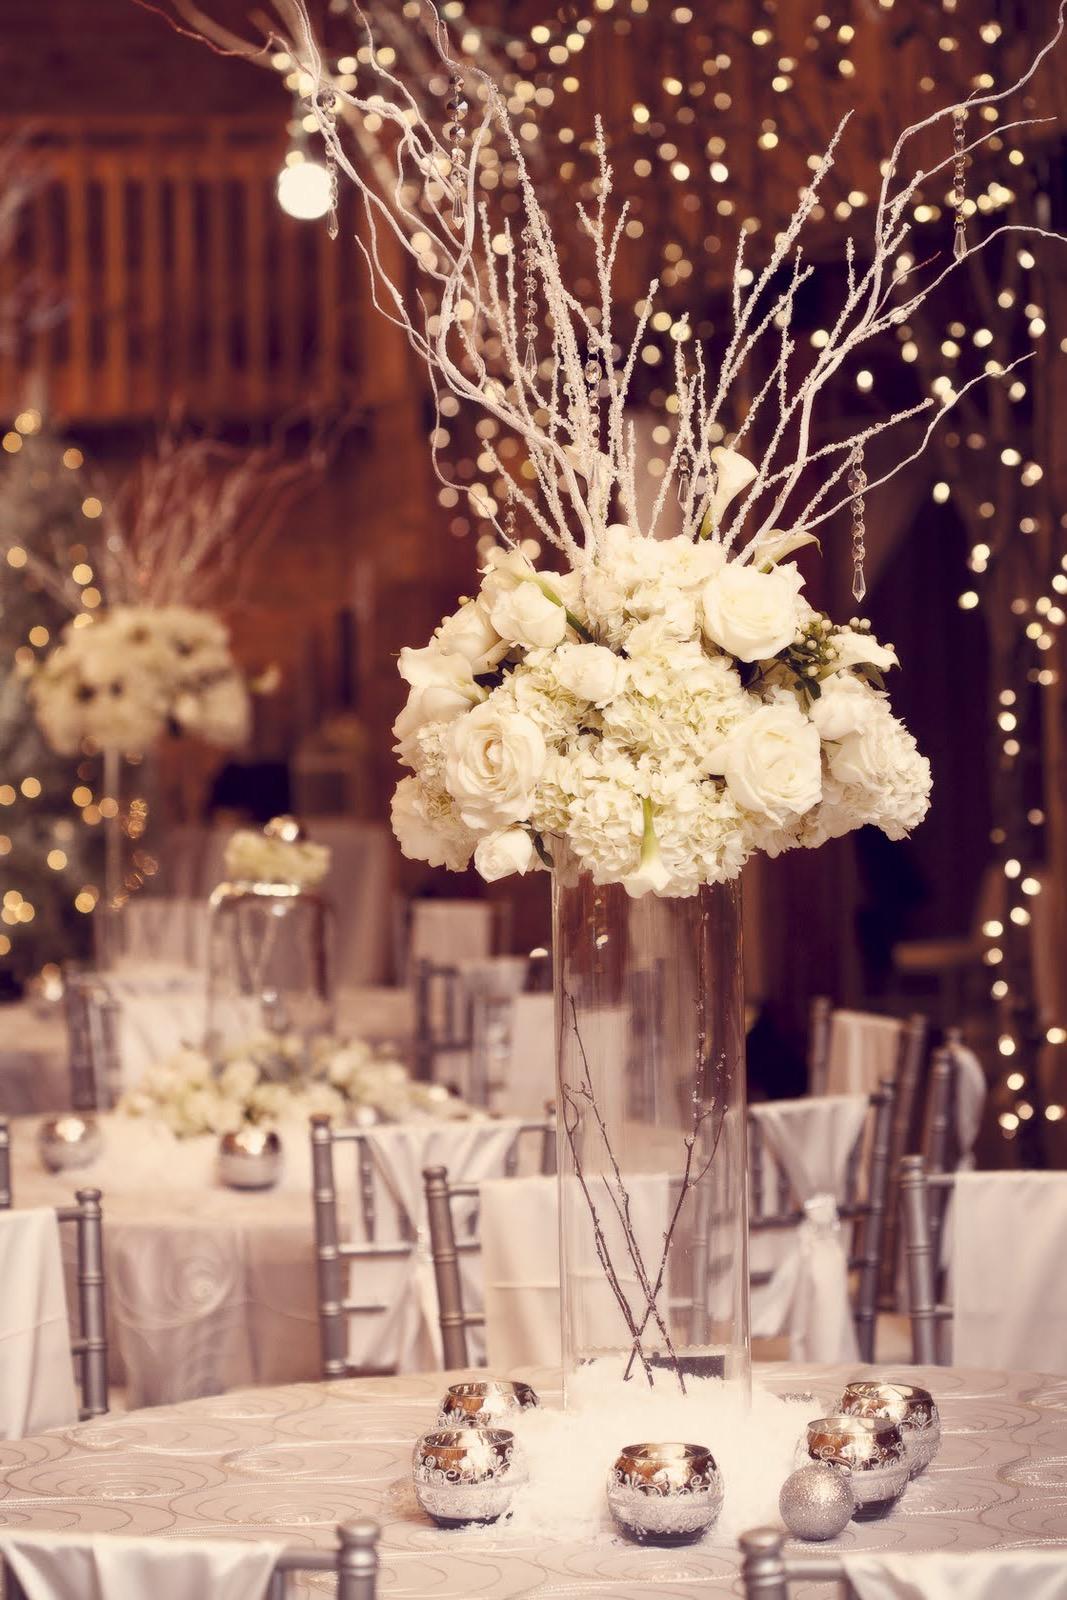 Tall Wedding Centerpieces With Branches And White Flower (View 18 of 30)